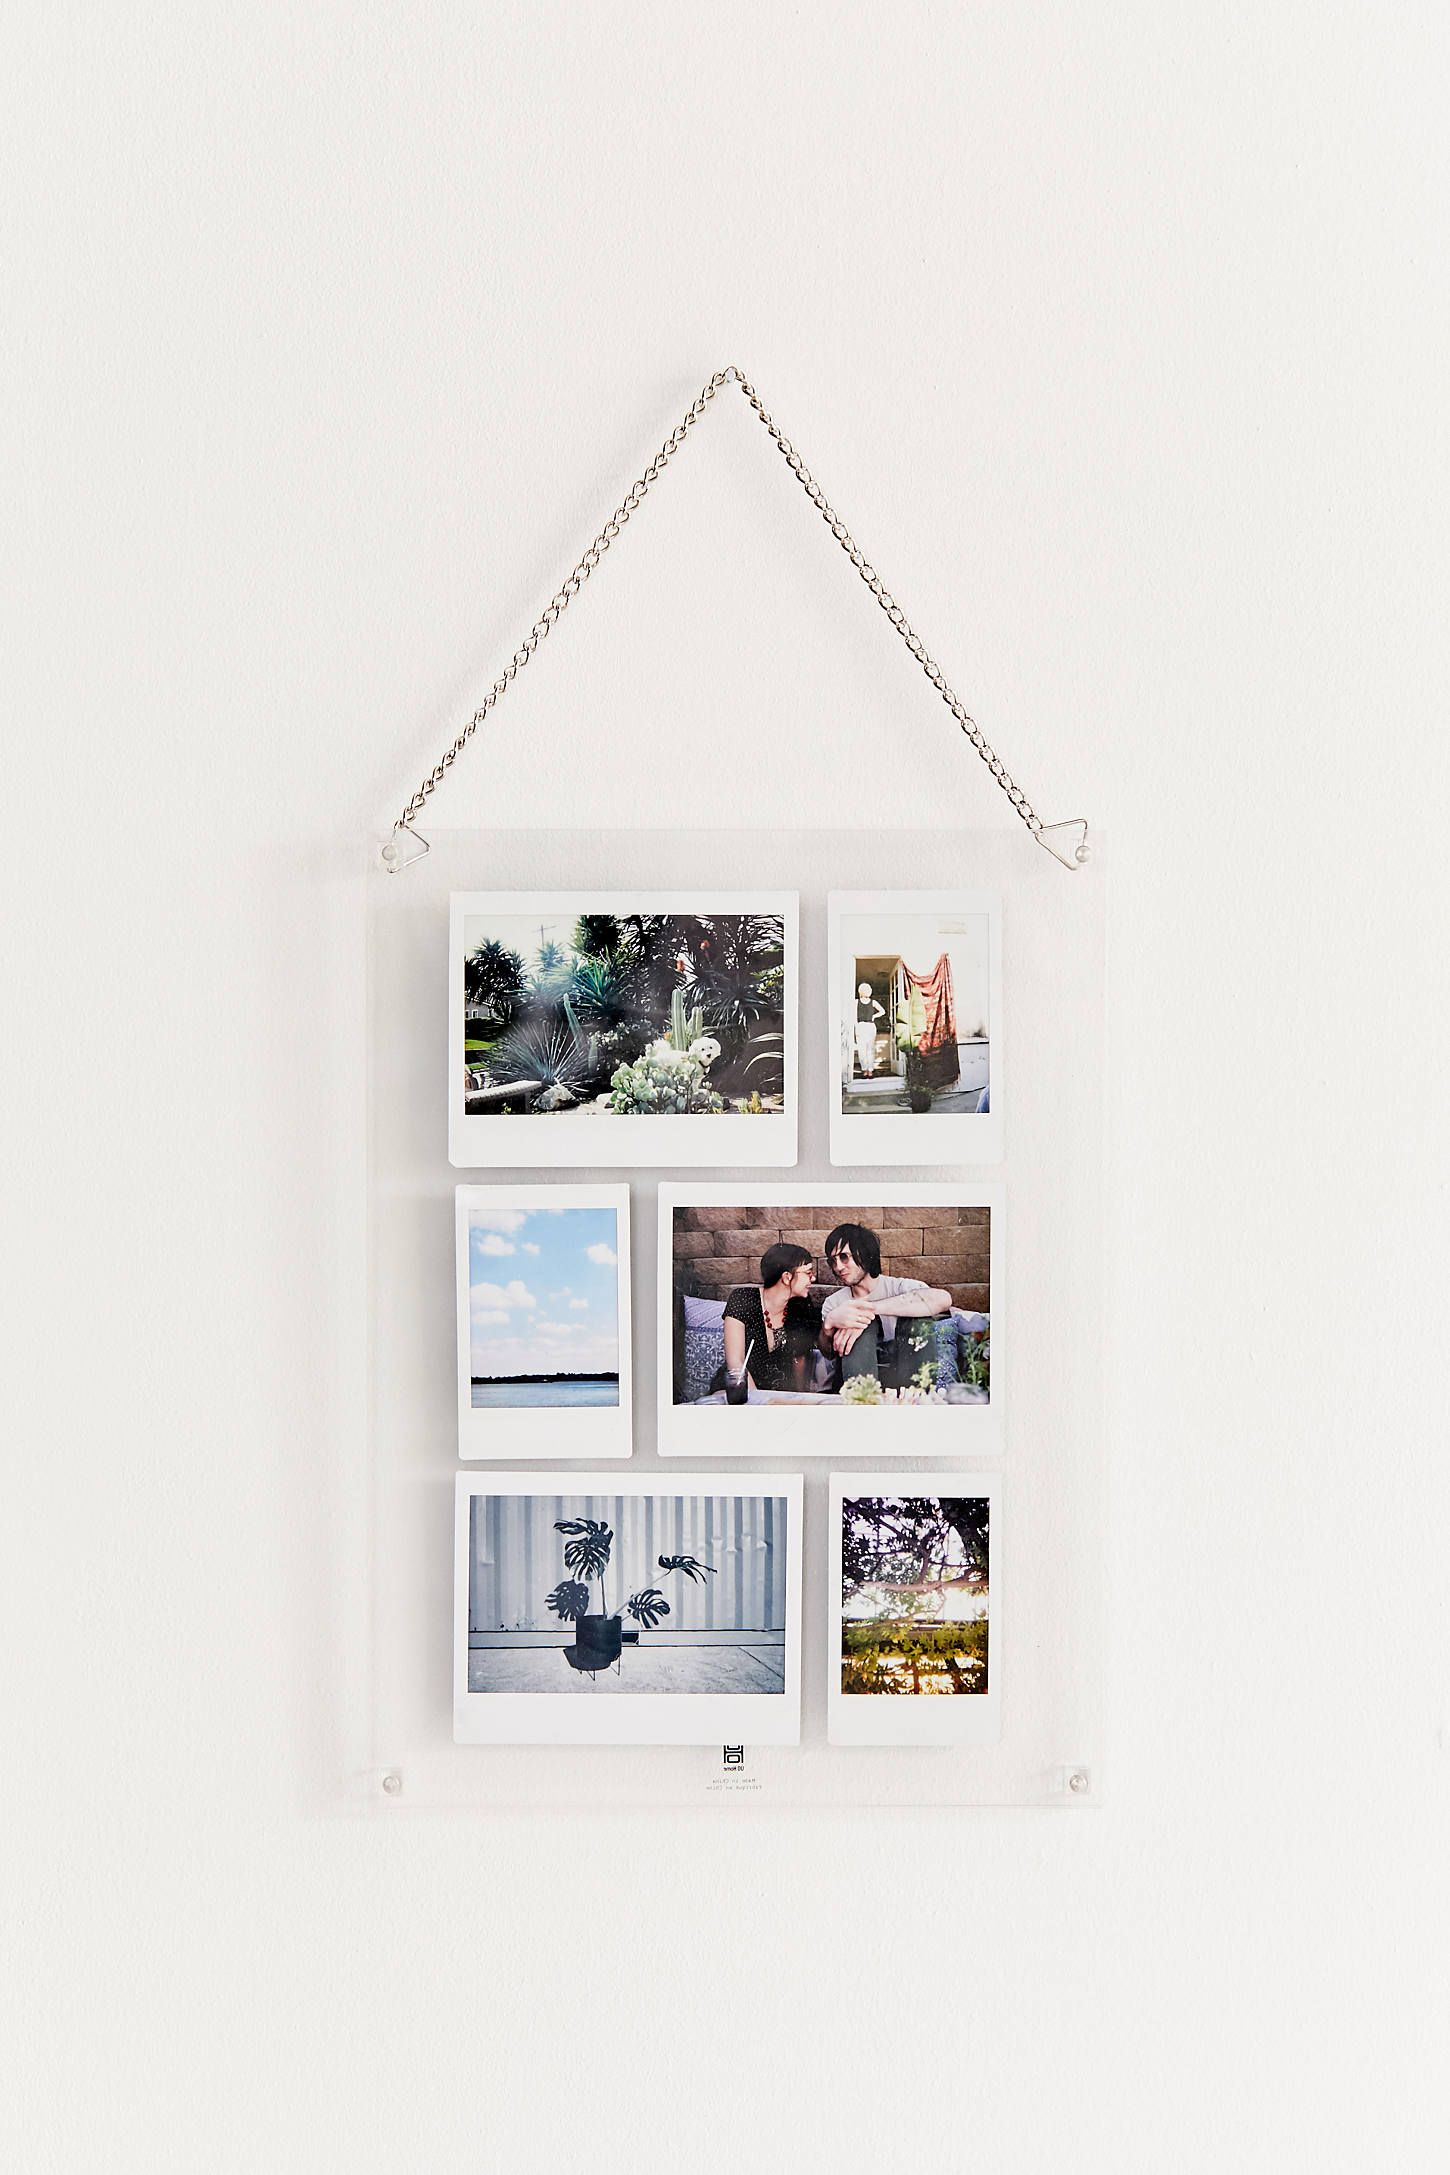 Acrylic Hanging Picture Frame Hanging Picture Frames Hanging Pictures Picture Frames